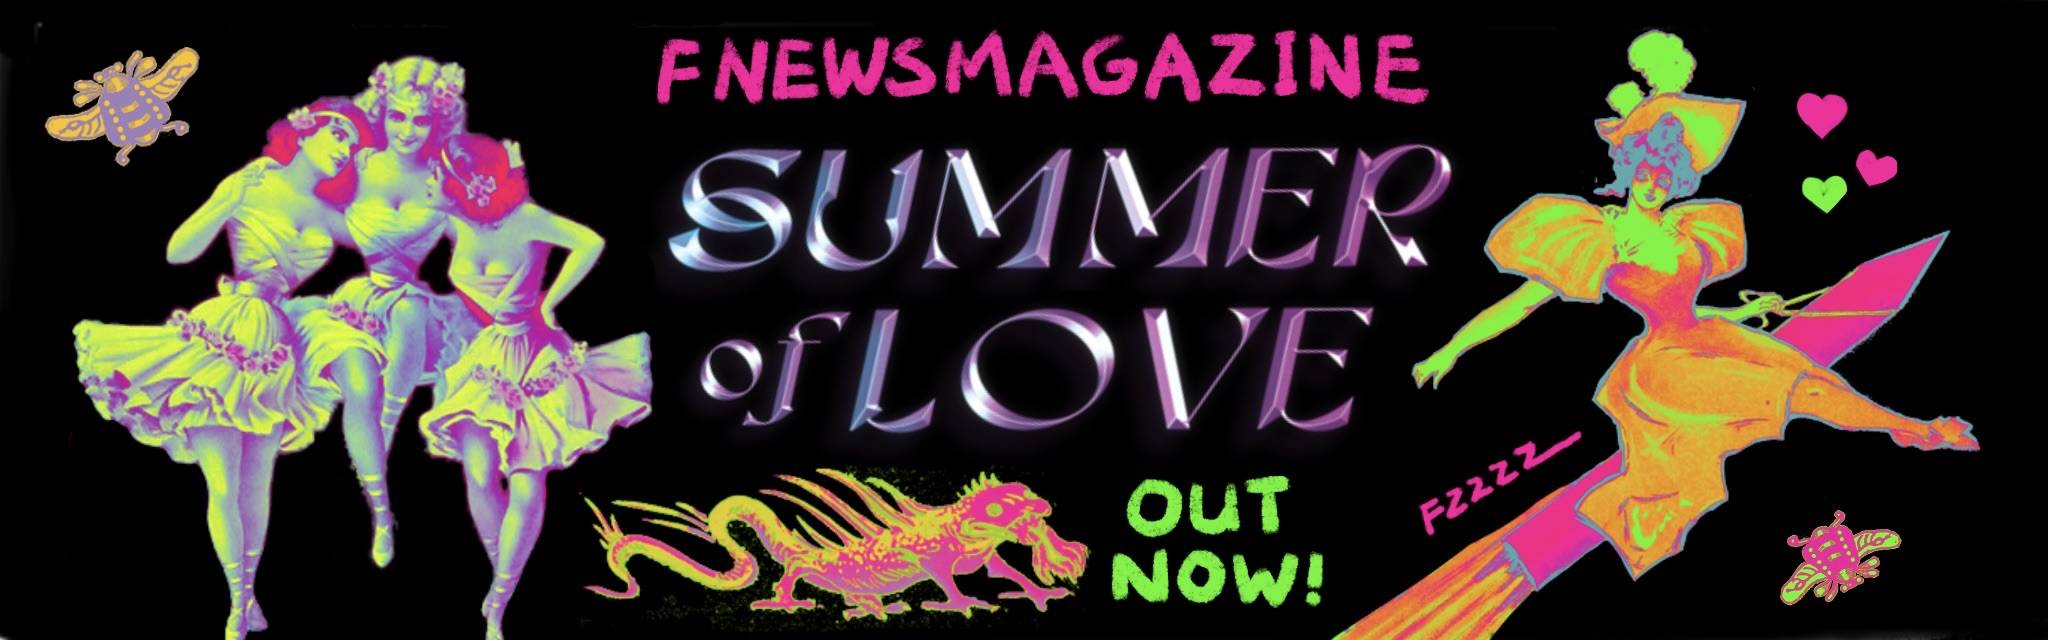 Summer 2021 Issue Out Now!